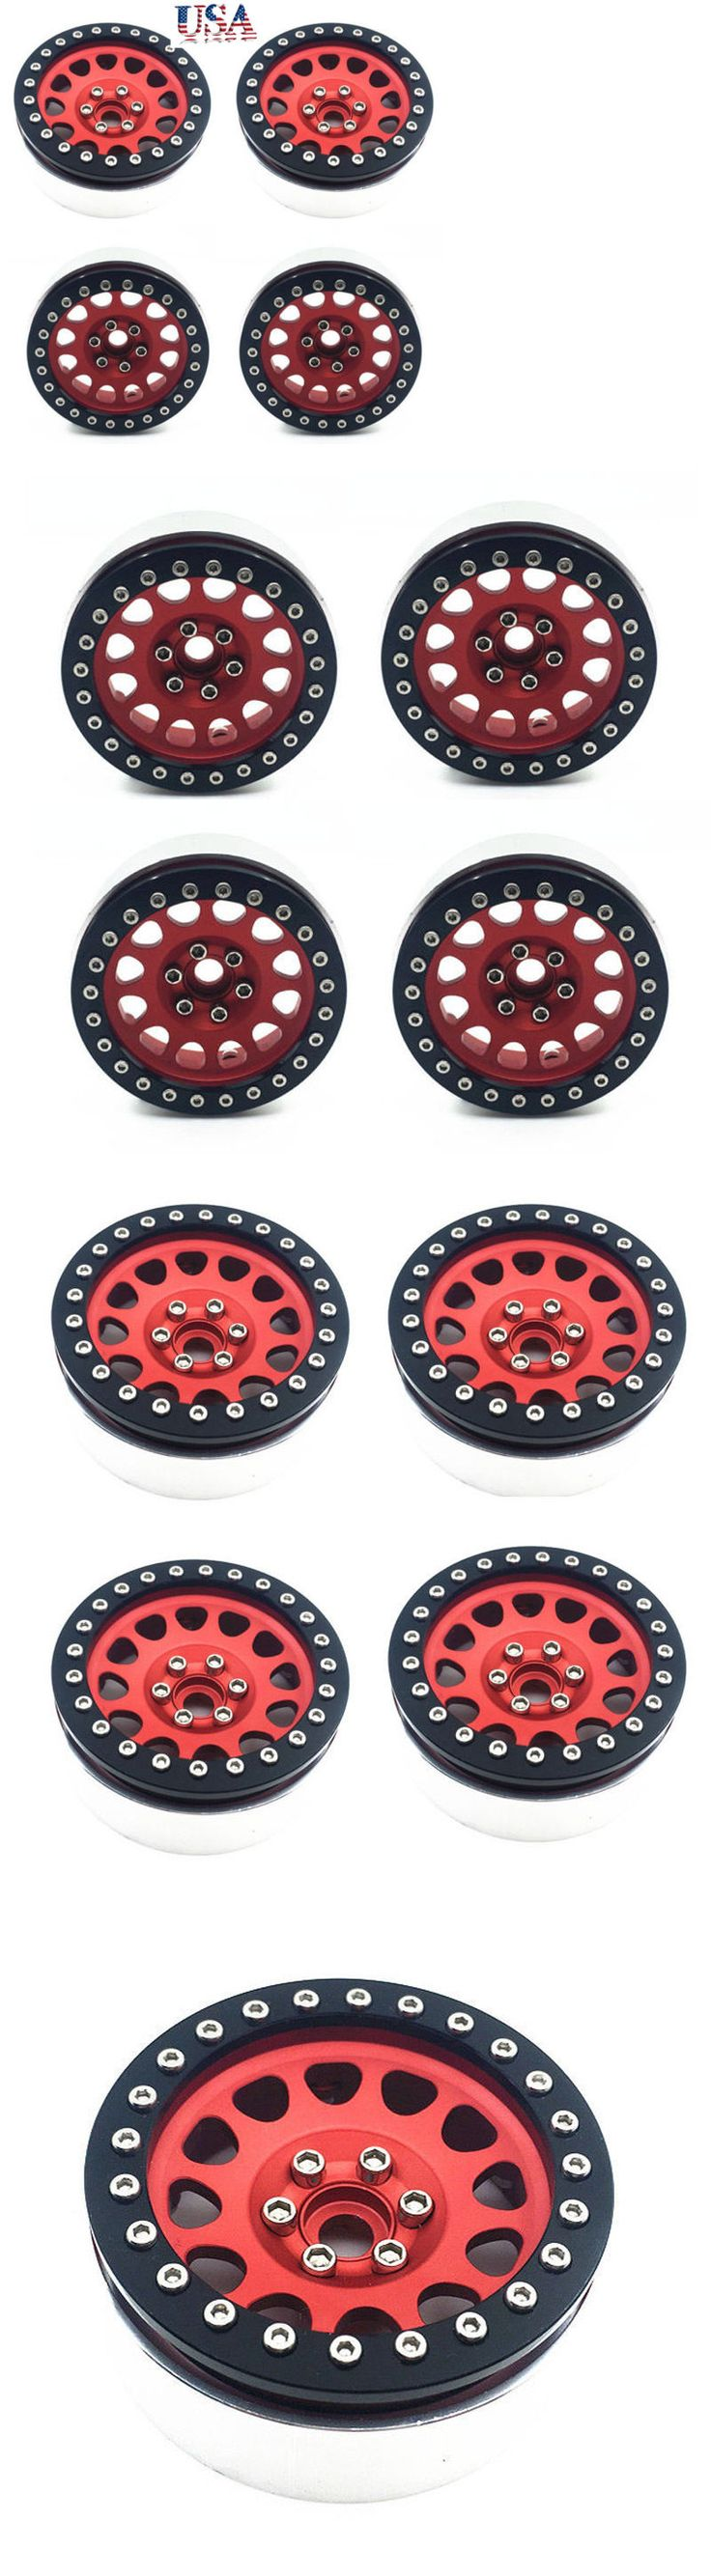 Wheels Tires Rims and Hubs 182201: 4 X 2.2 Aluminum Wheel Rims 1 10 Beadlock For Rc Crawler Axial Wraith Rock Cars -> BUY IT NOW ONLY: $58.49 on eBay!